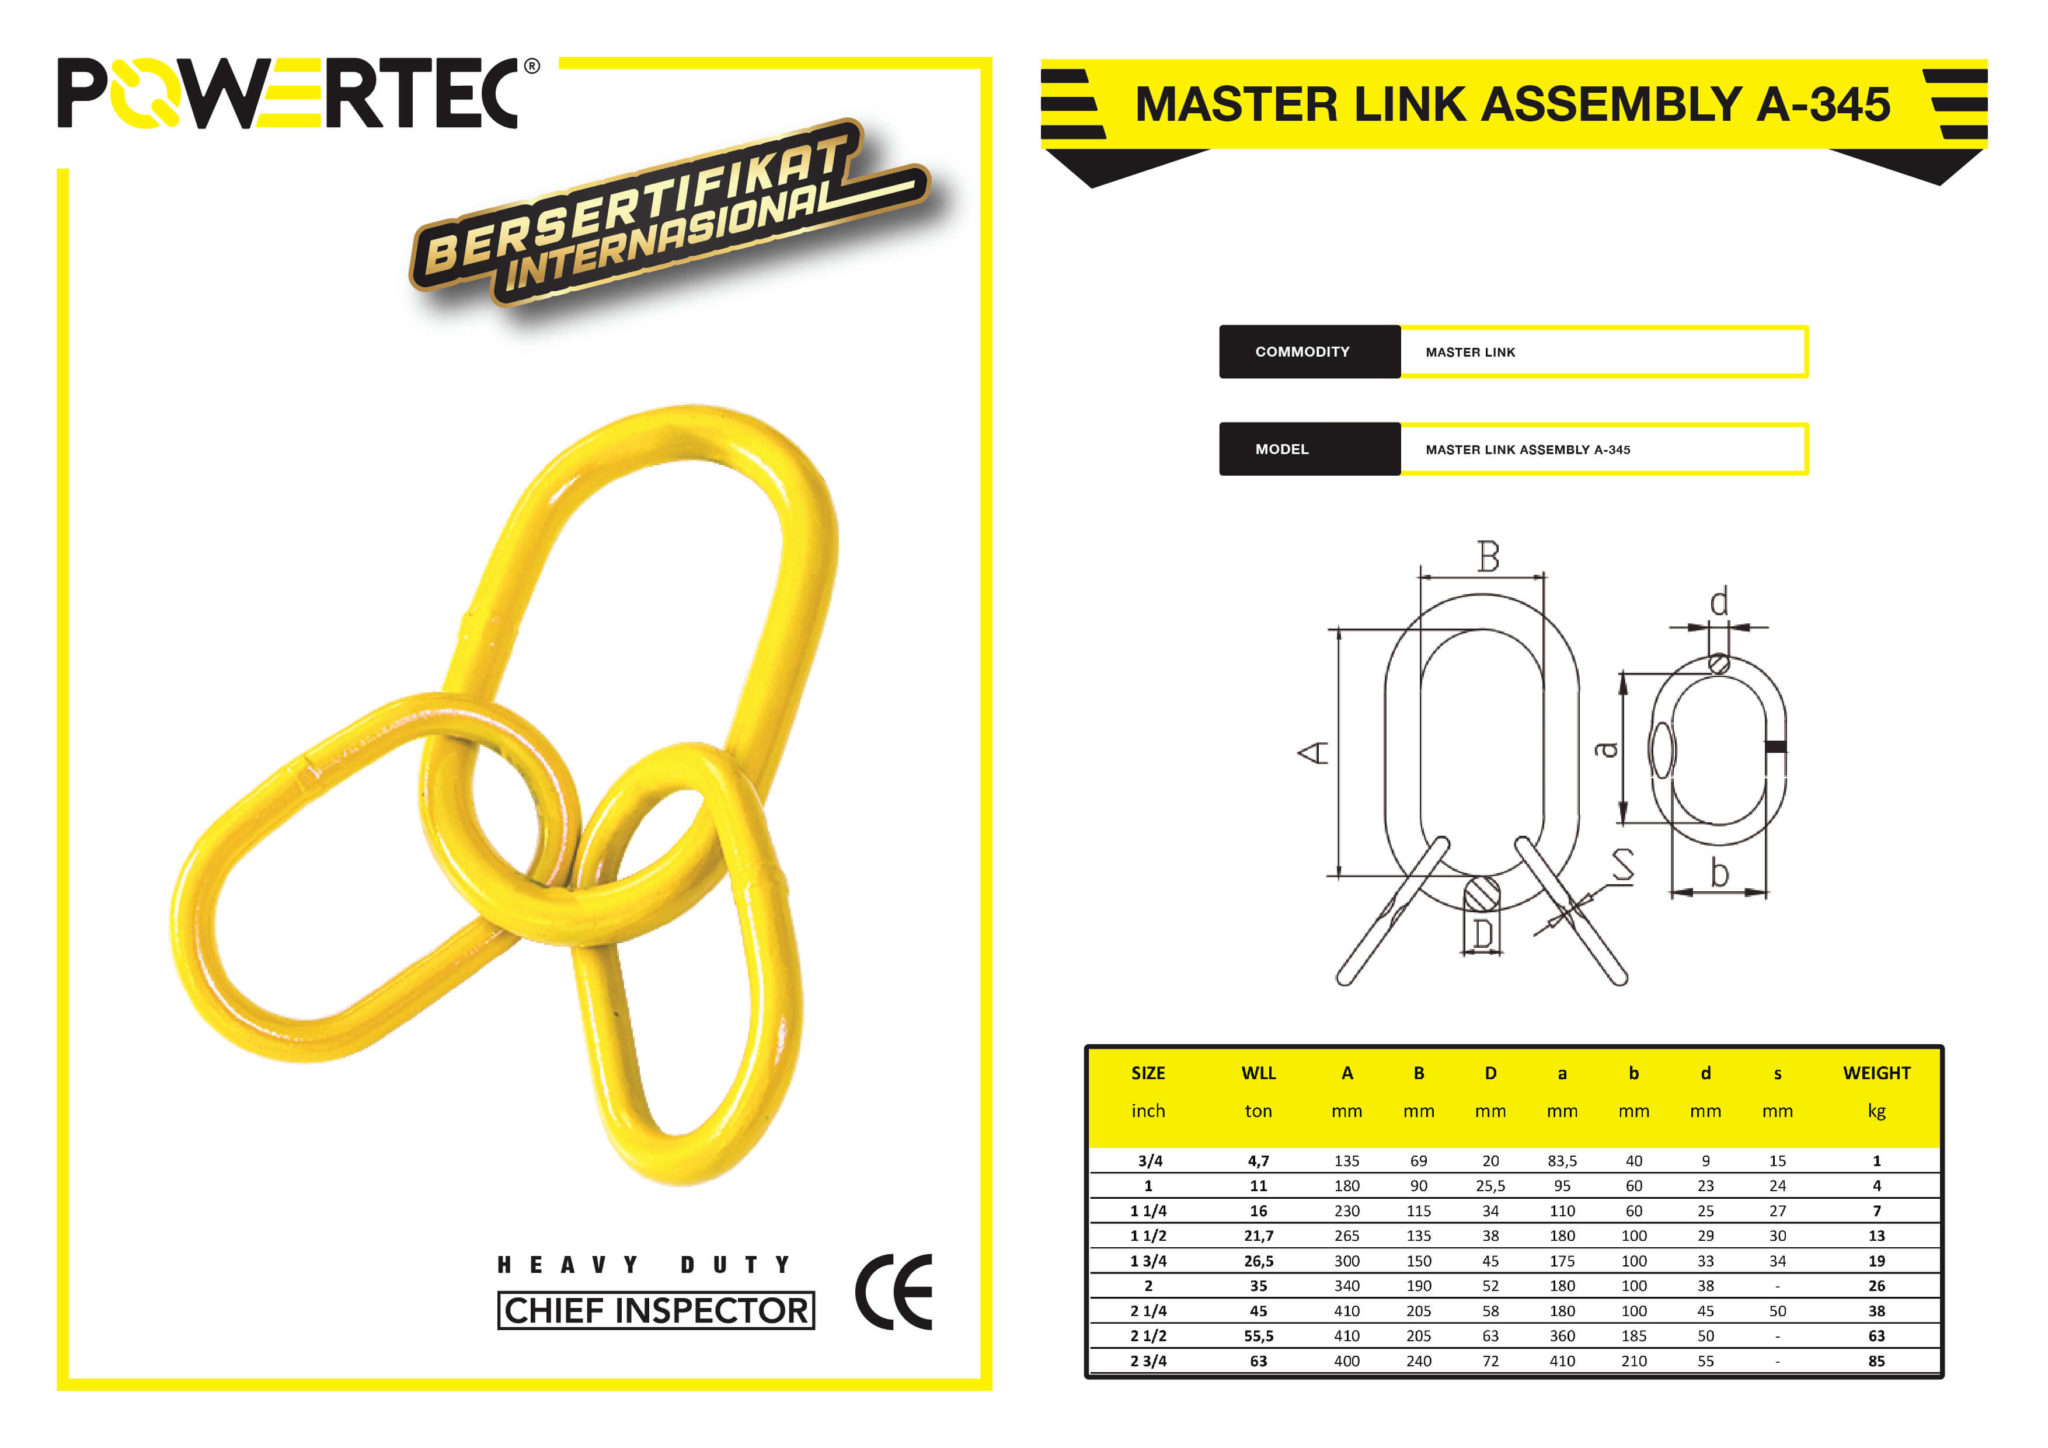 POWERTEC MASTER LINK ASSEMBLY A-345 BROCHURE